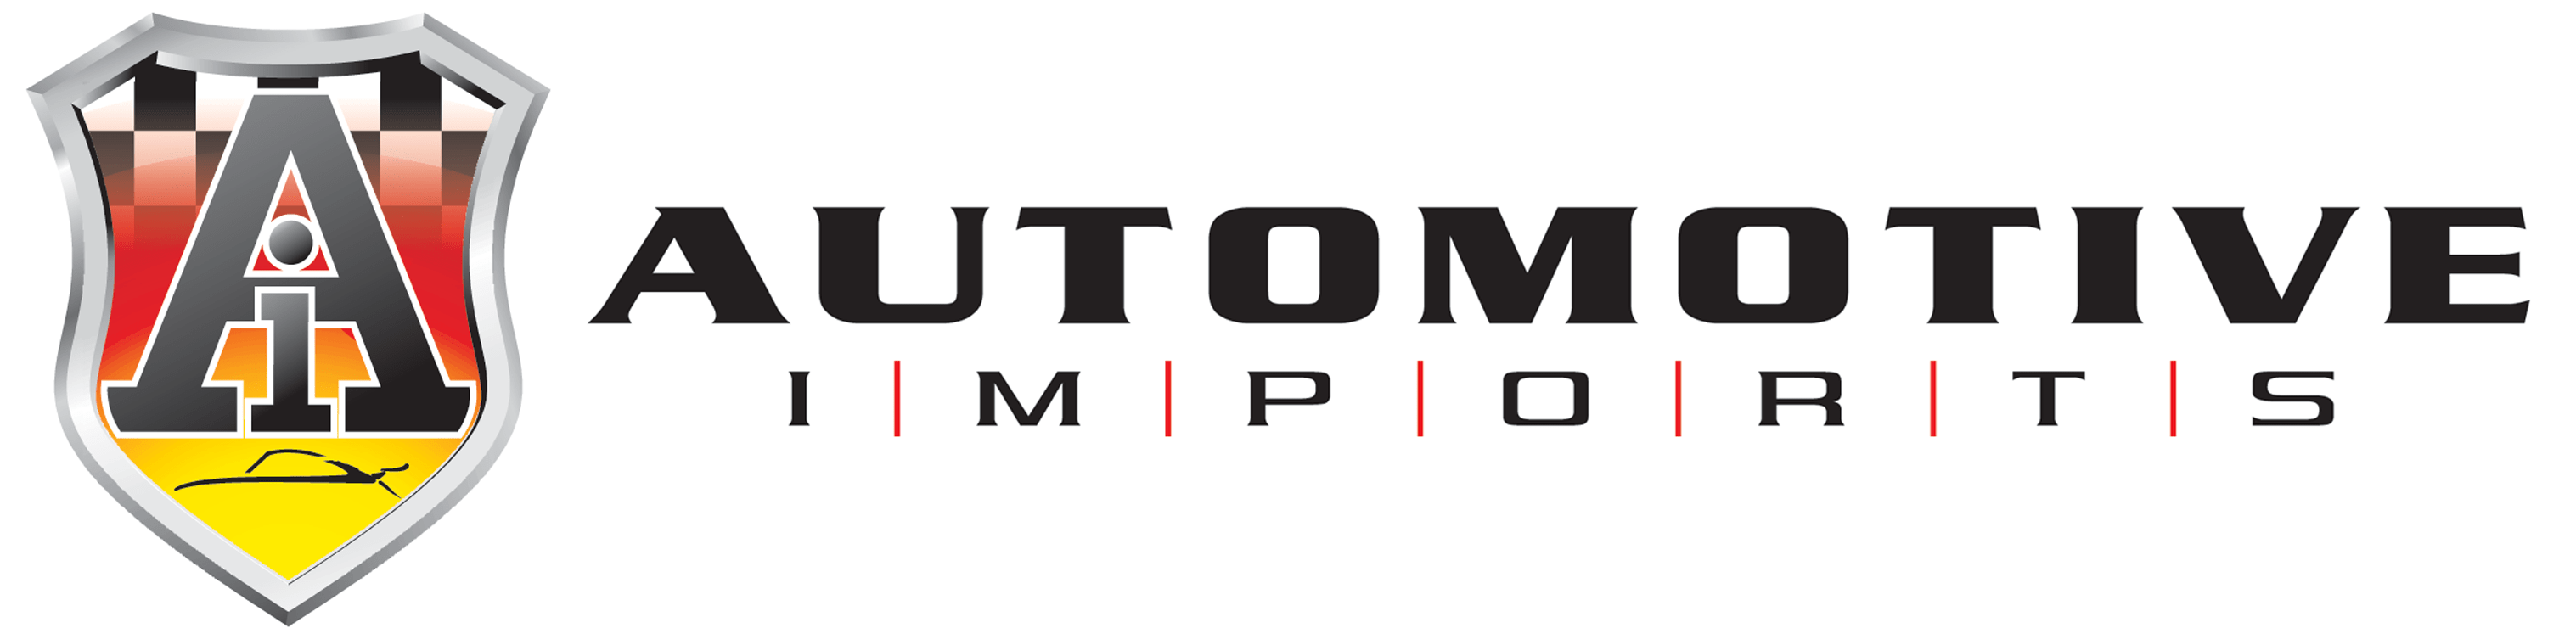 Automotive Imports logo